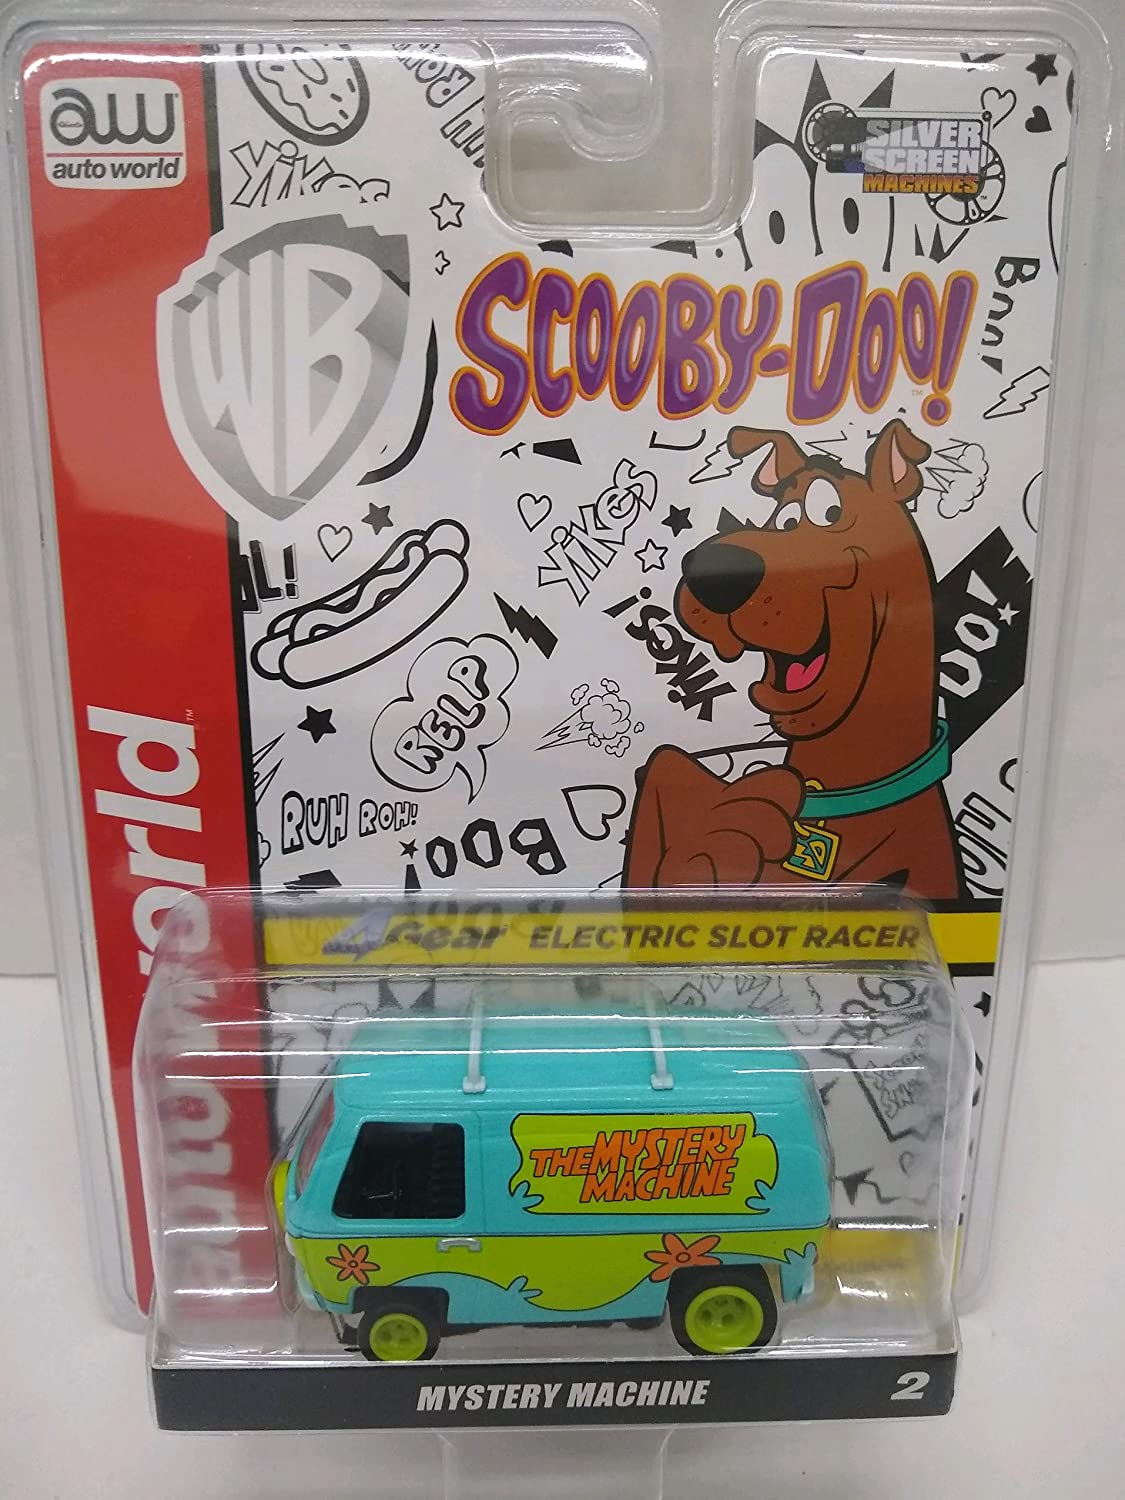 Auto World SC358 Scooby-Doo Dedication Mystery Scale HO Electric 67% OFF of fixed price Sl Machine